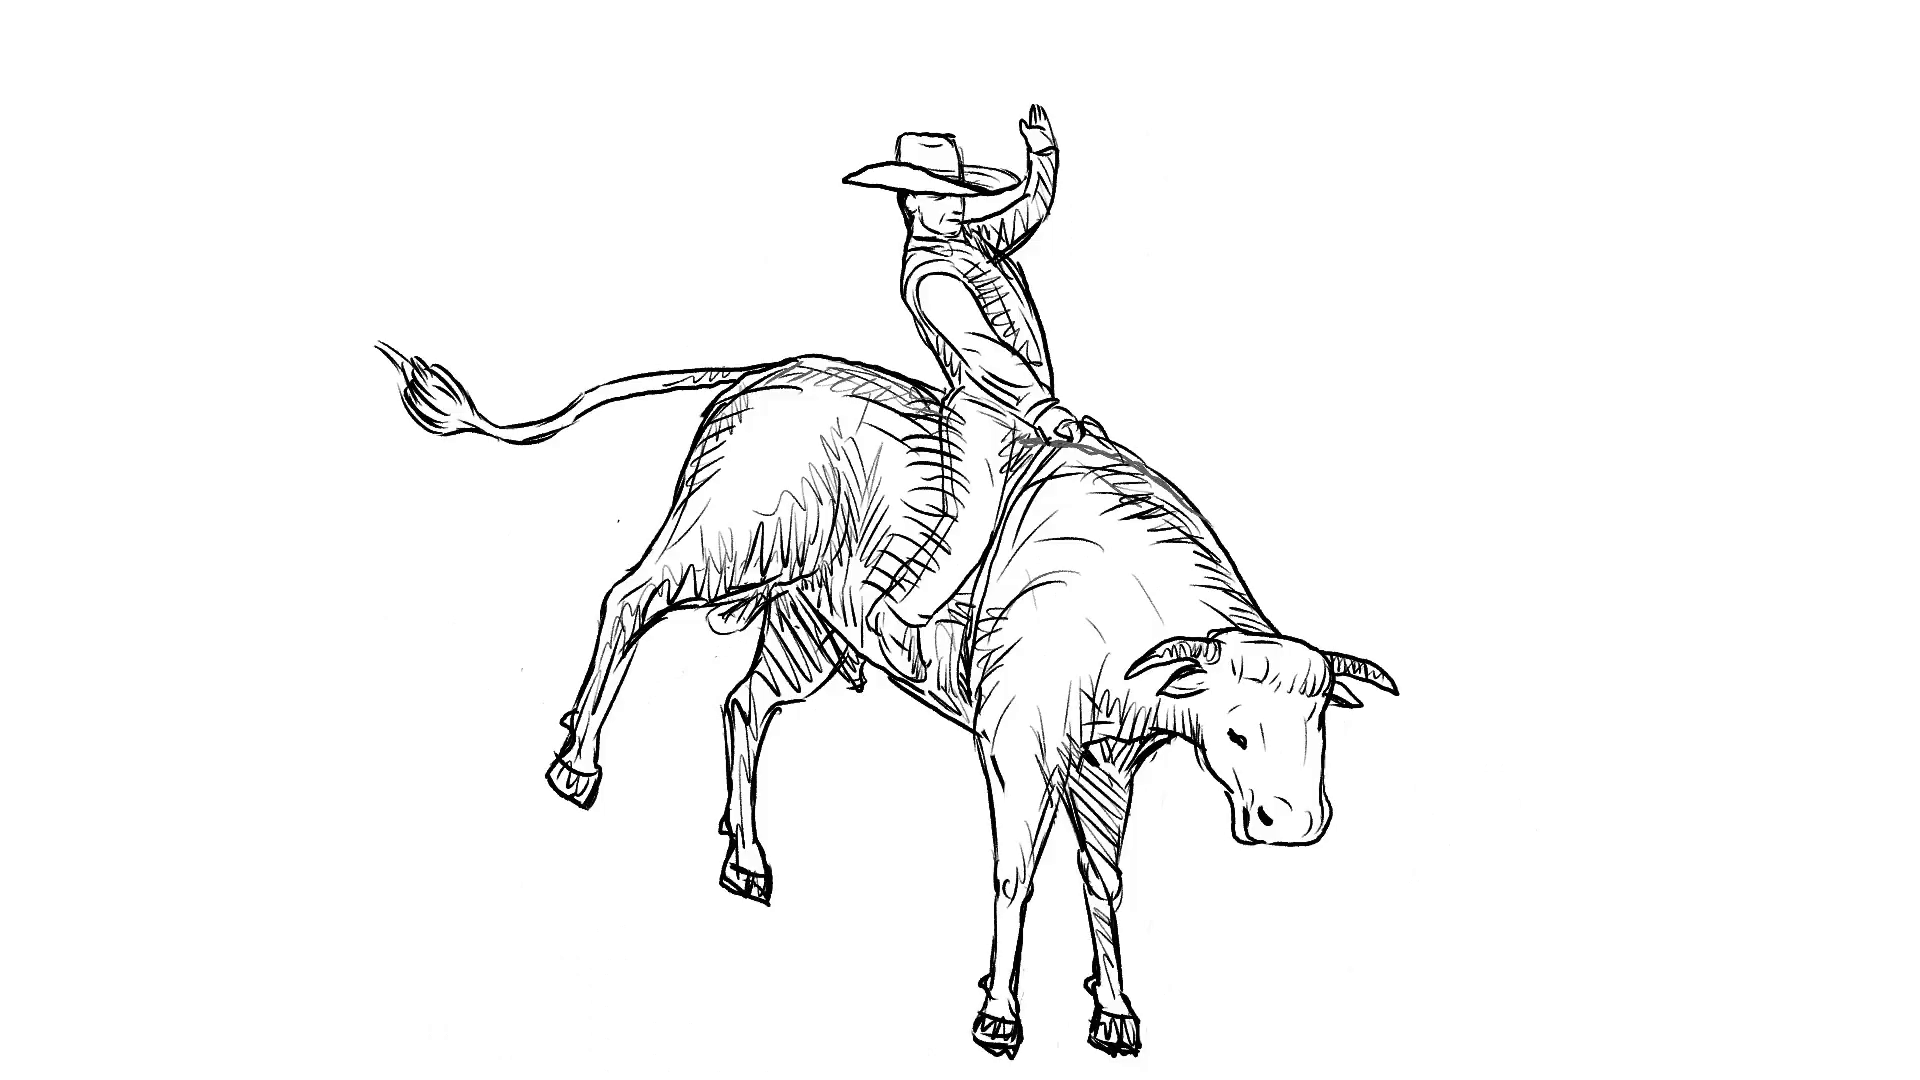 1920x1080 2d Animation Motion Graphics Showing A Rodeo Cowboy Bull Rider